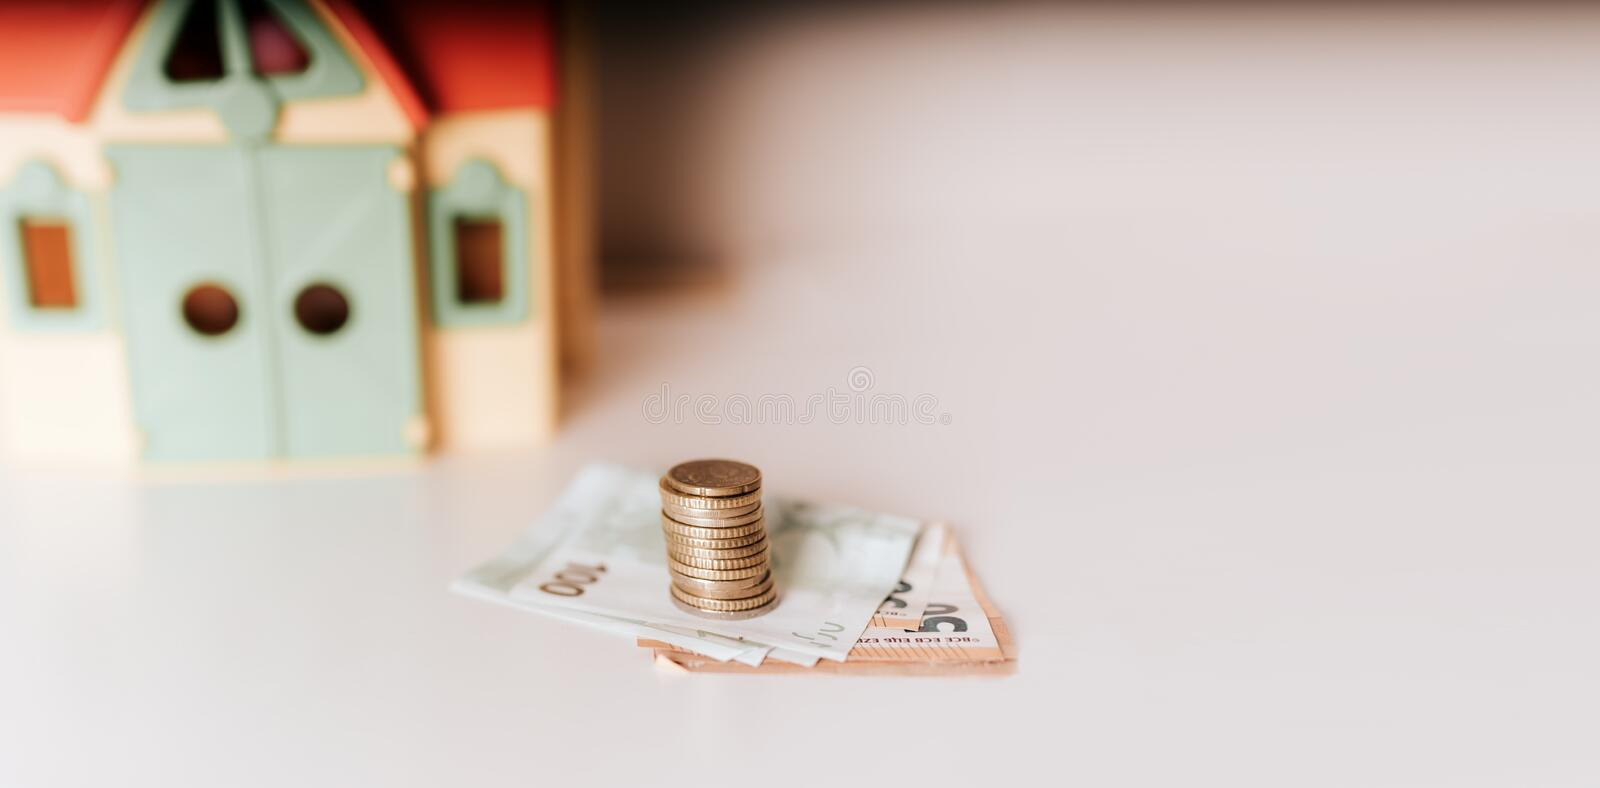 House mortgage loan buy sell price real estate investment money stock photo stock image